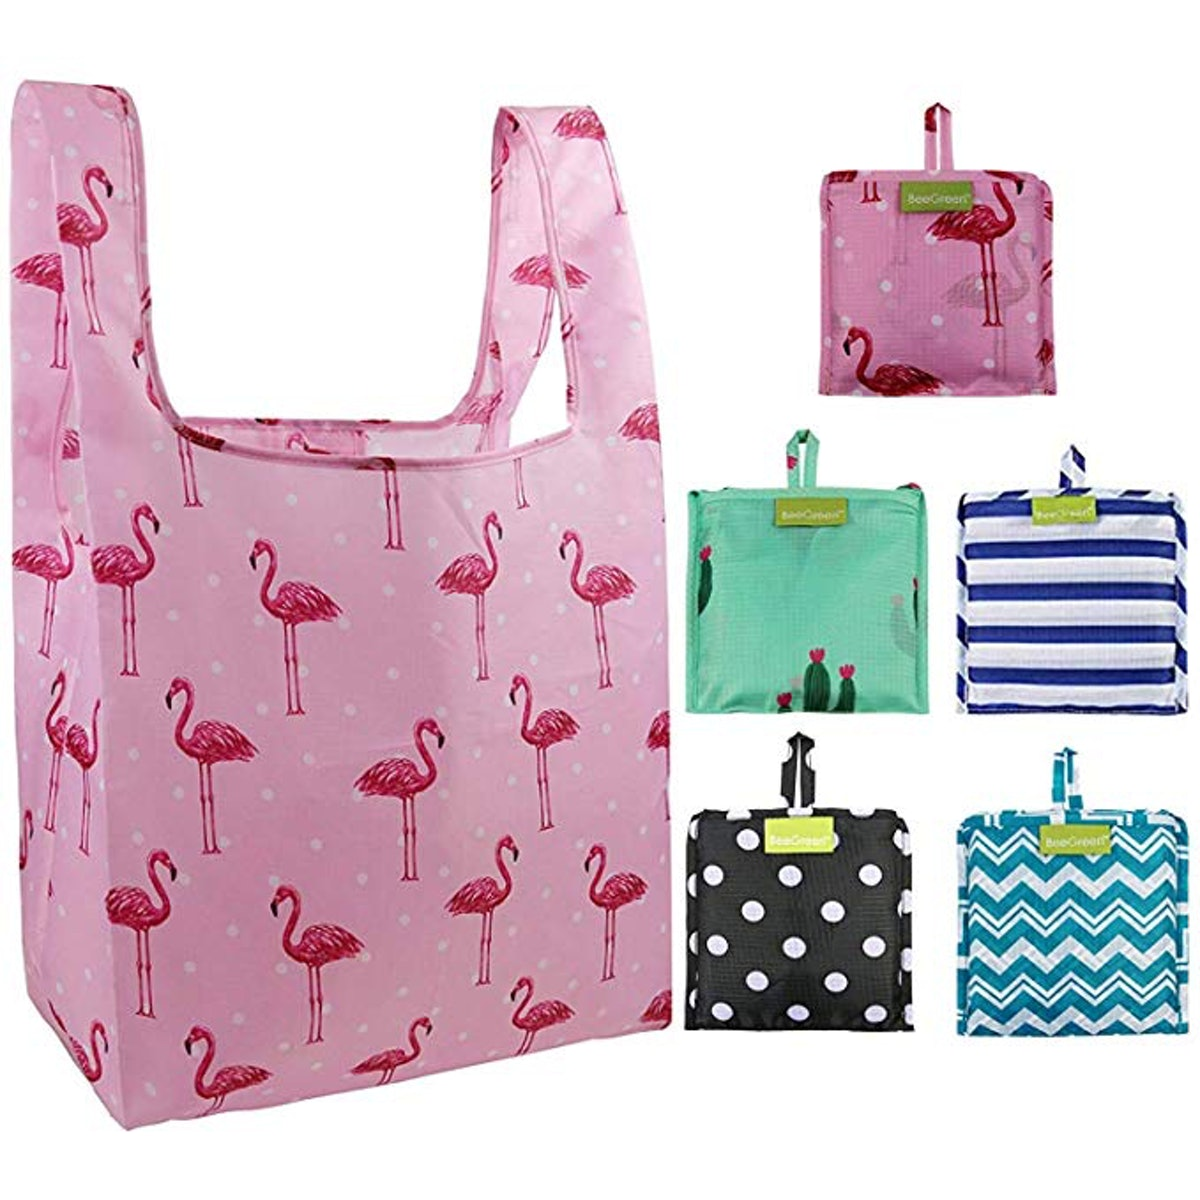 Foldable Reusable Grocery Bags (5-Pack)